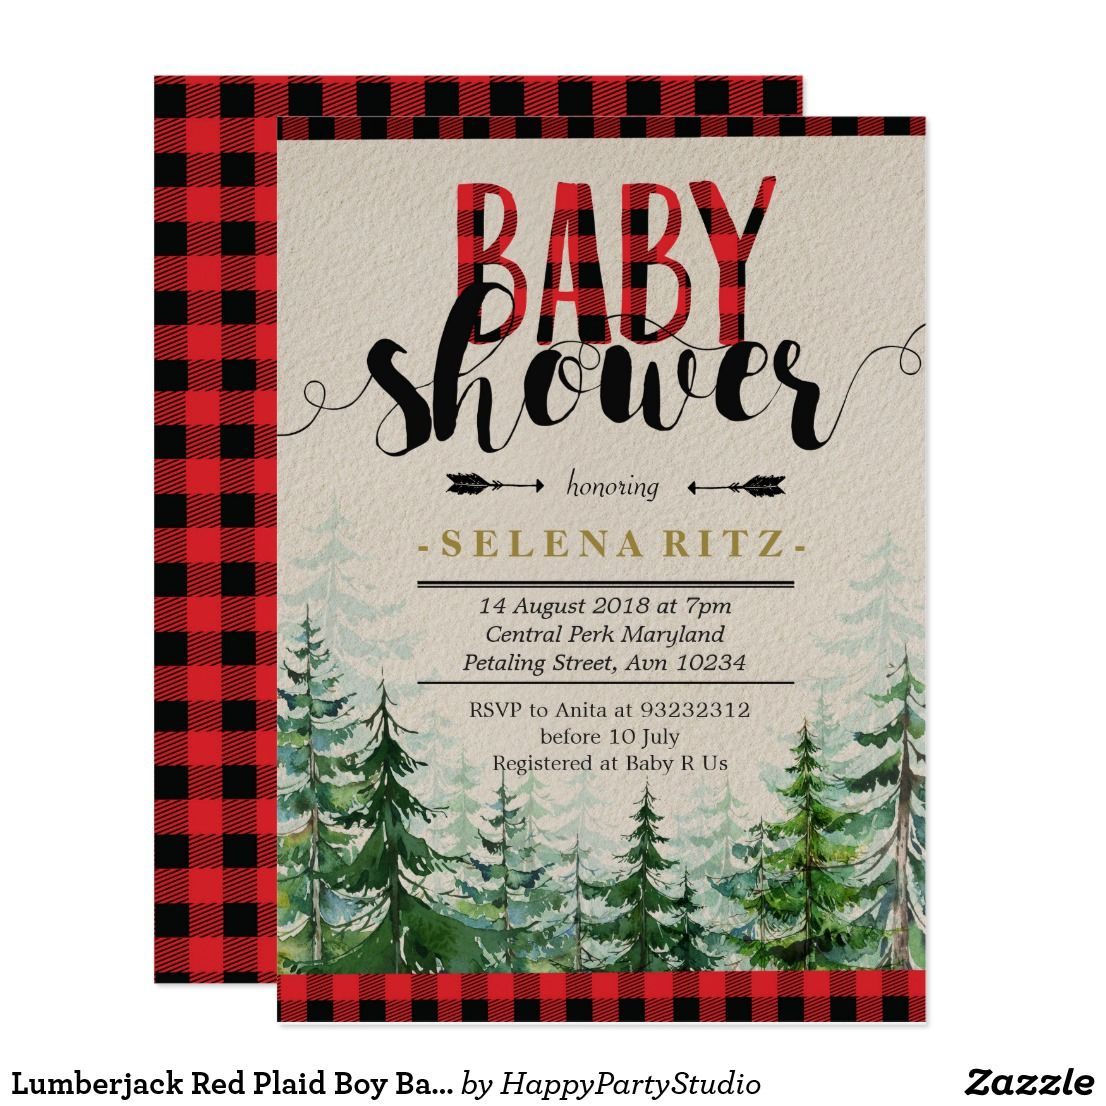 Lumberjack Red Plaid Boy Baby Shower Invitation | Pinterest | Boy ...